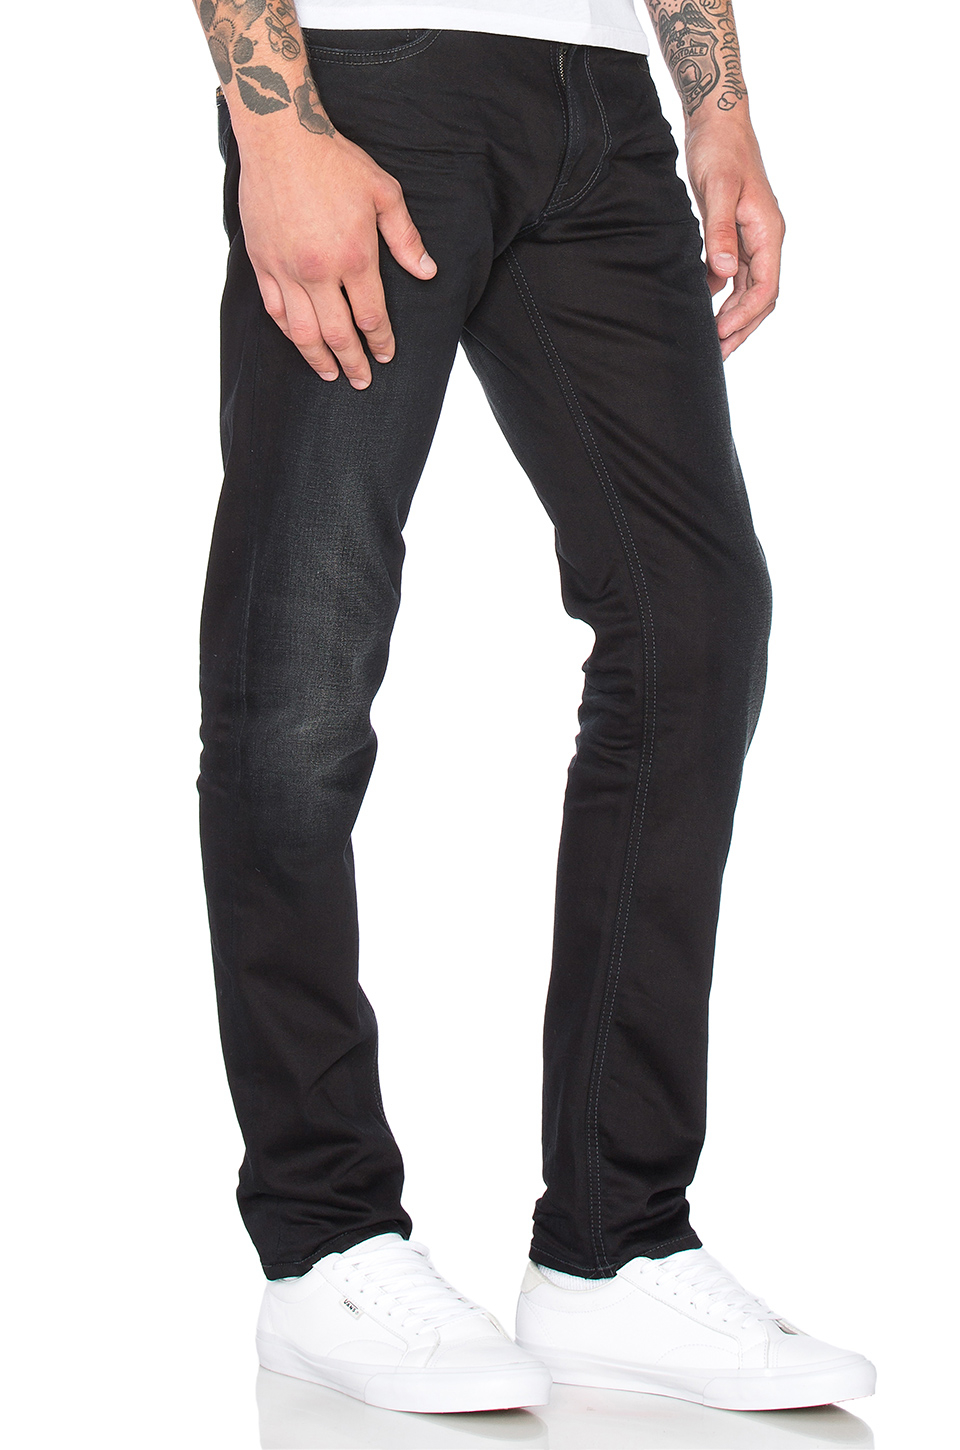 Nudie Jeans Thin Finn: Back 2 Black Jeans pics